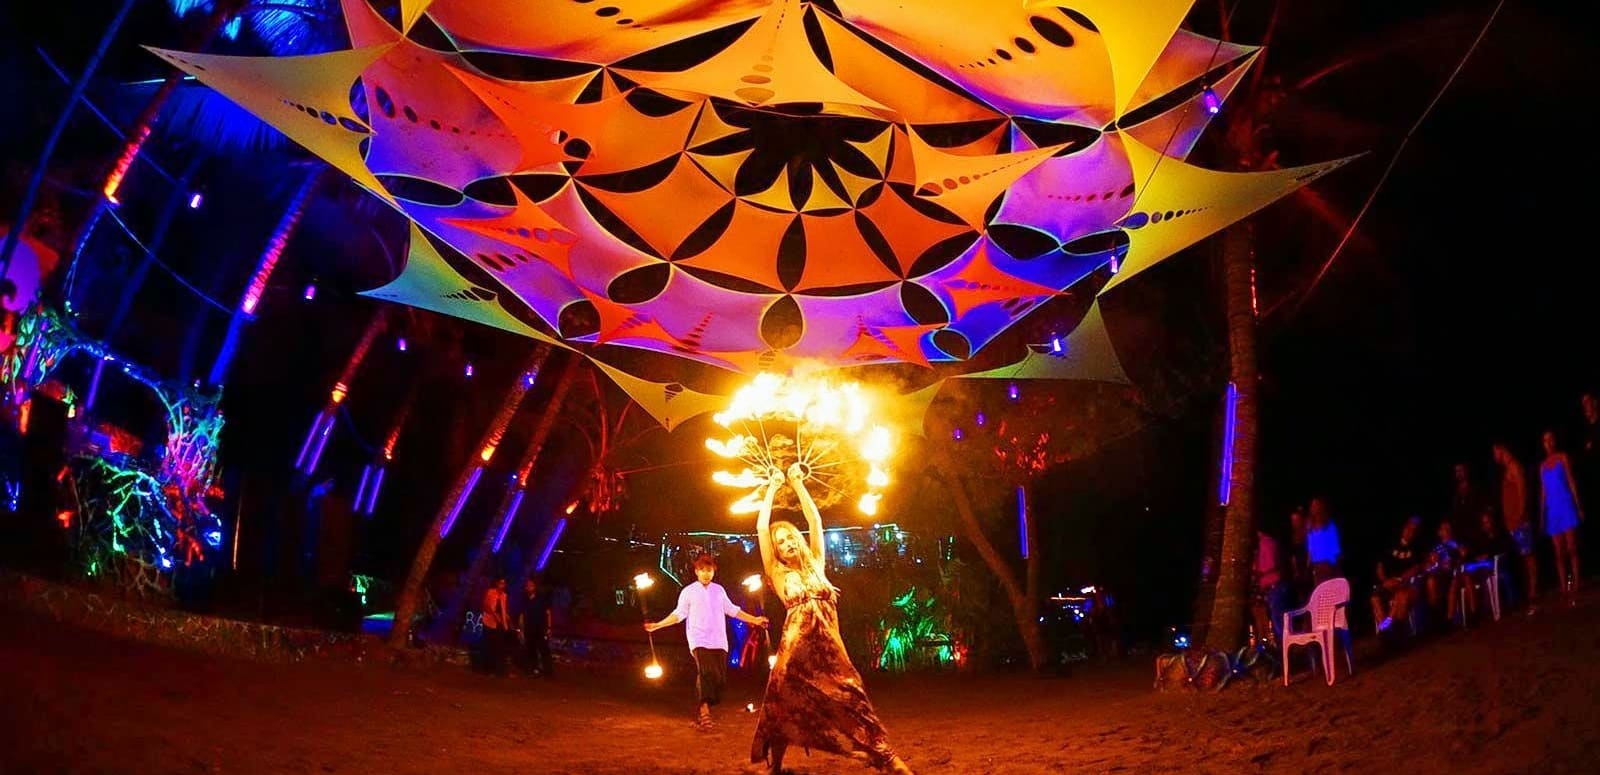 Six useful tips to experience the best nightlife in Goa